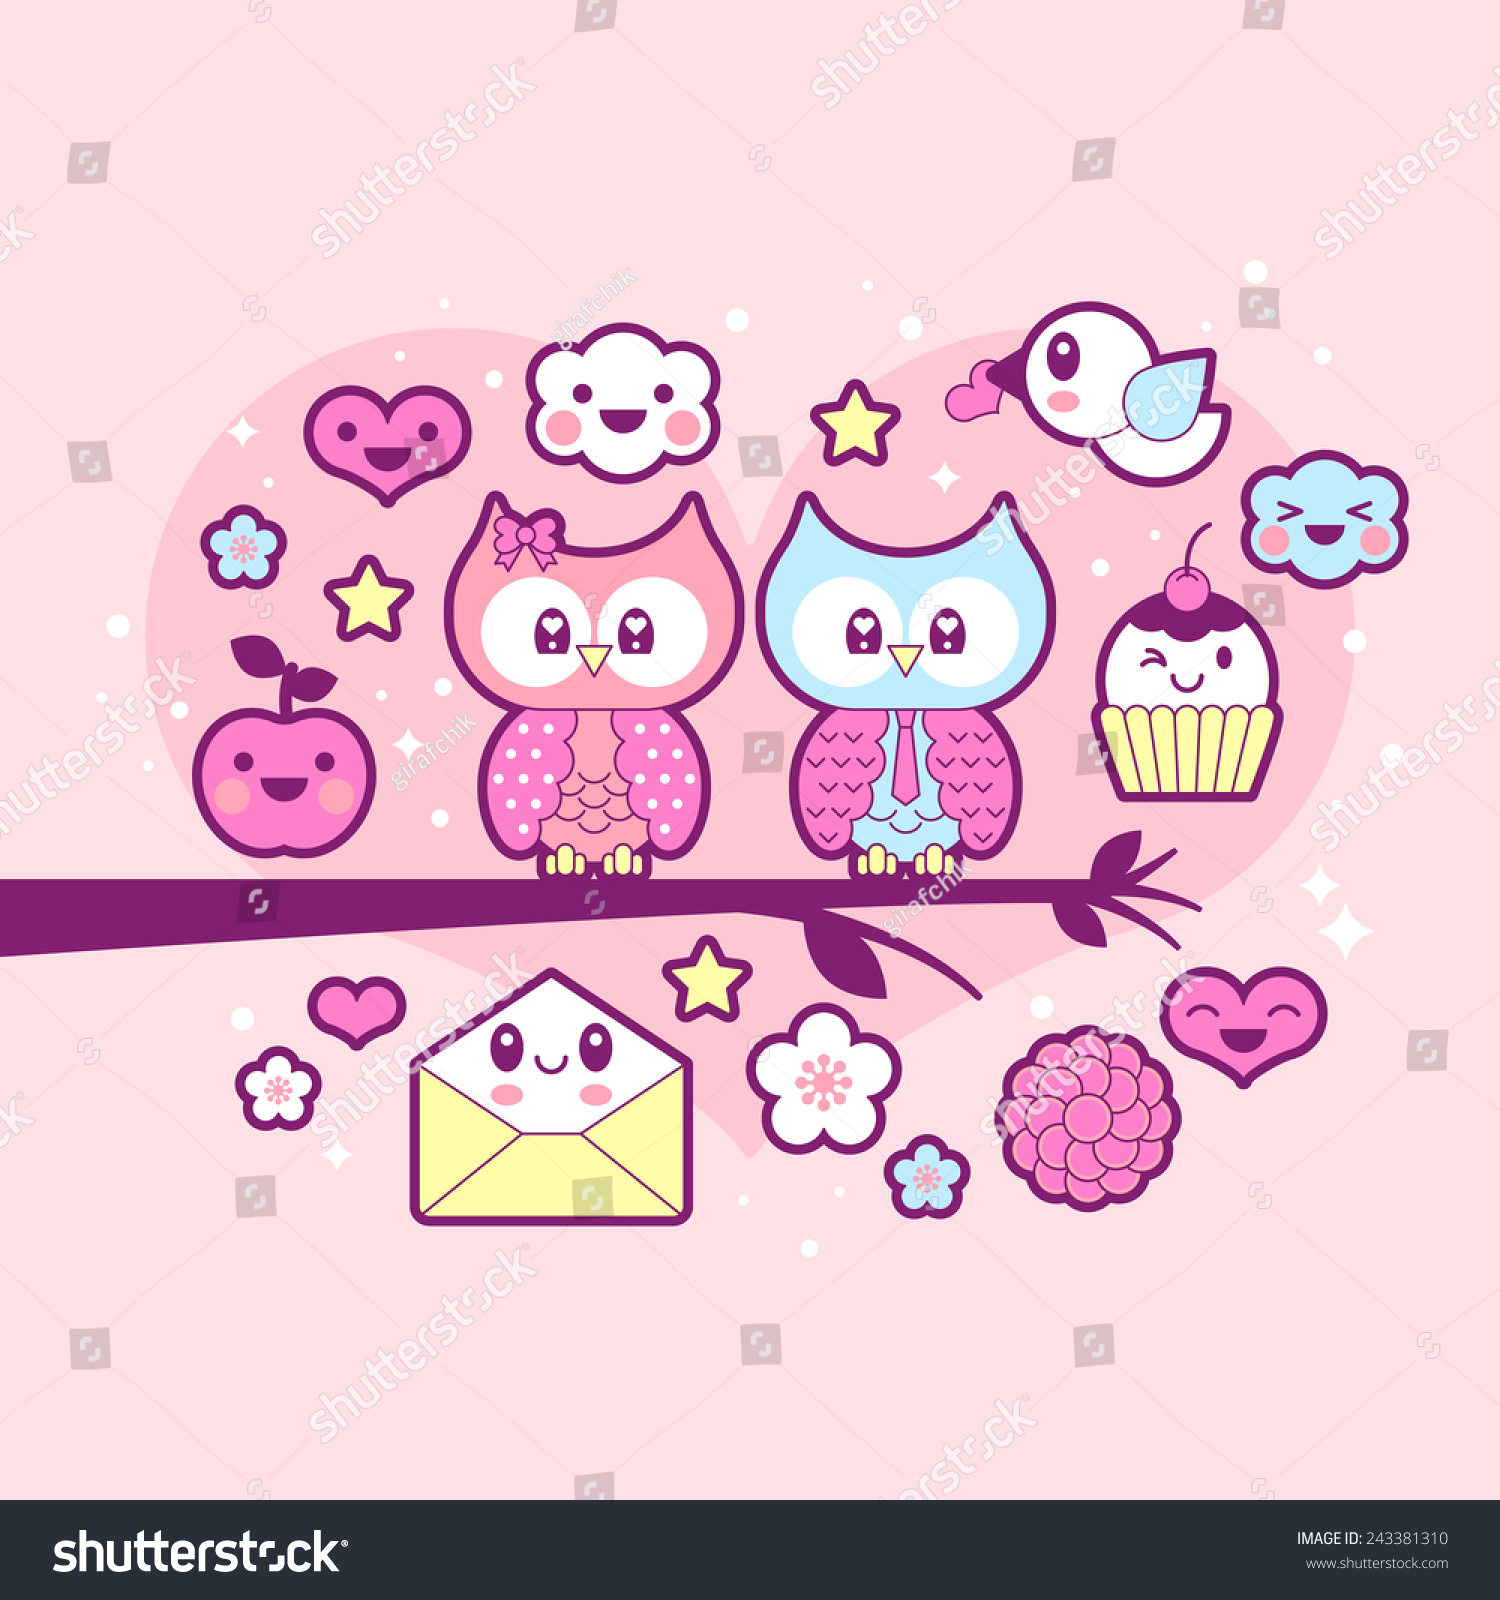 Valentineu0027s Day Kawaii Icon Set With Cute Owls